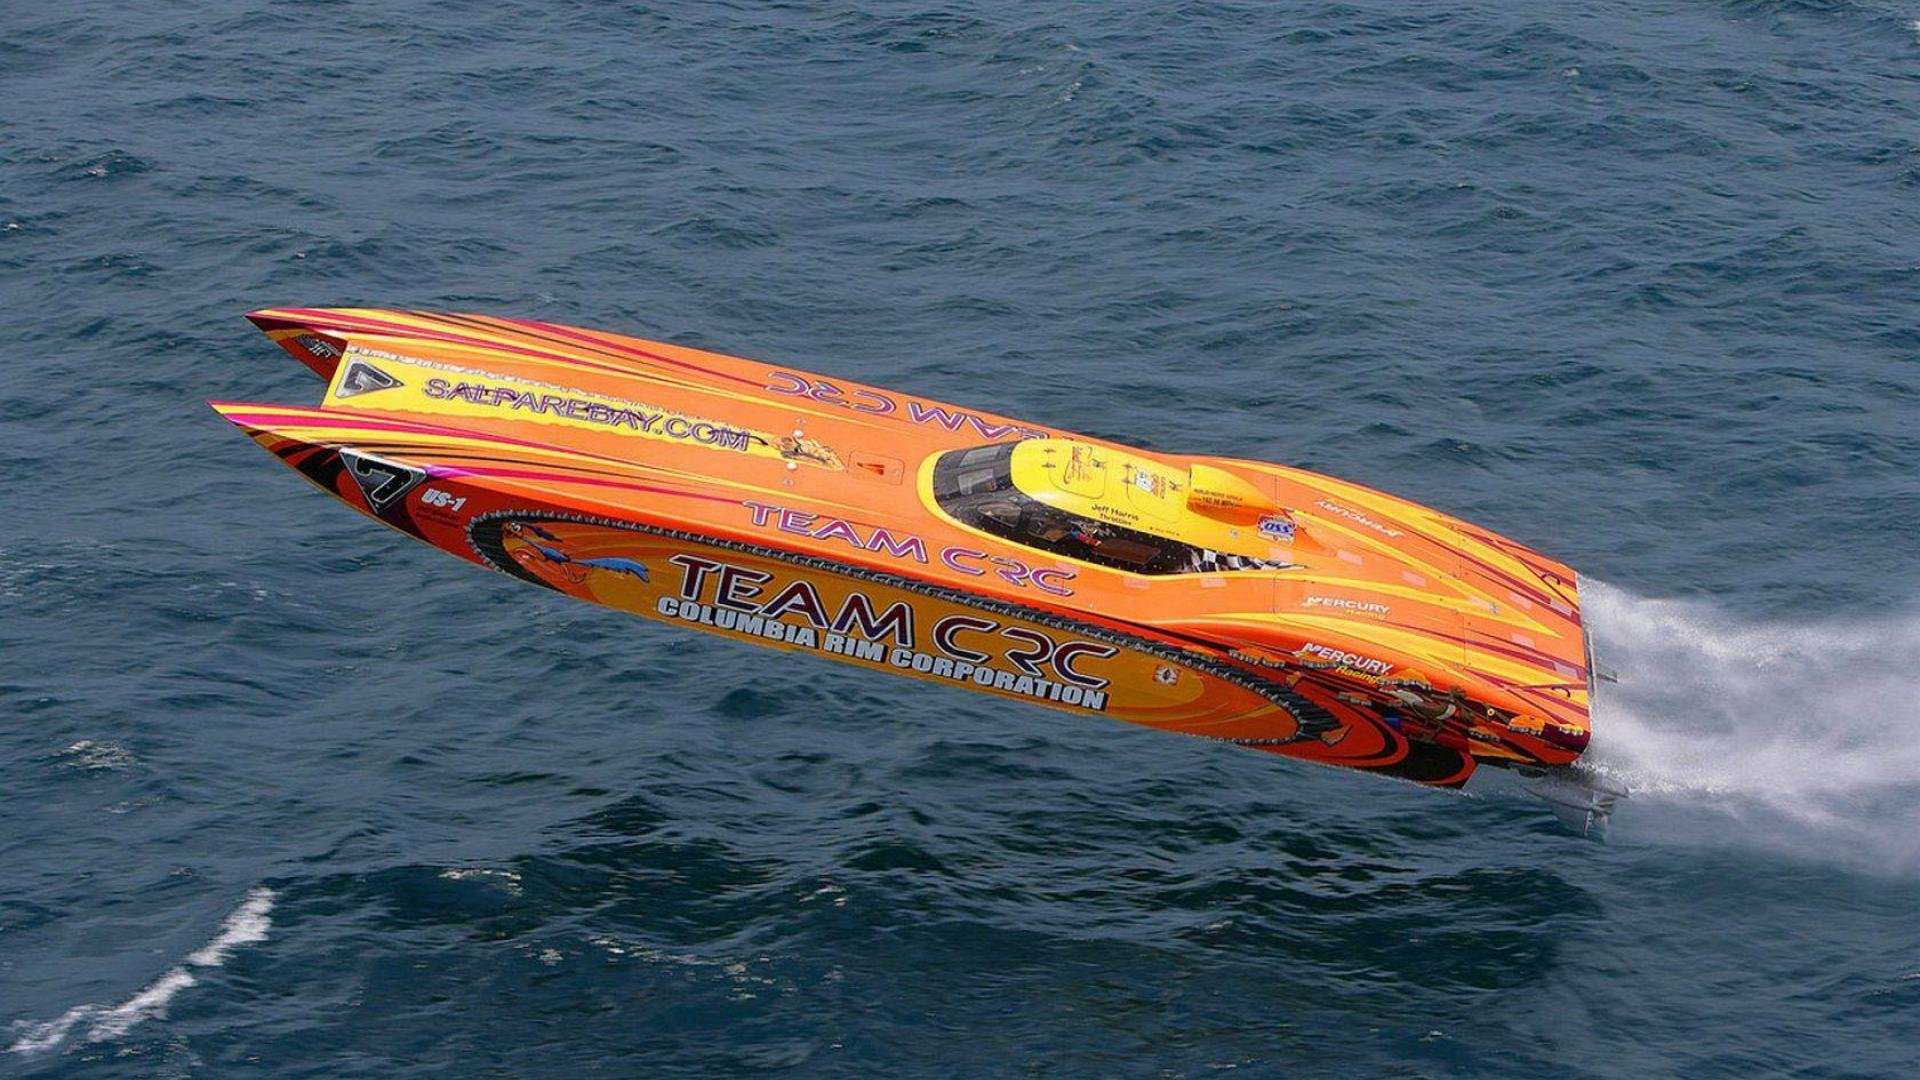 superboat custom cigarette offshore race racing wallpaper background 1920x1080